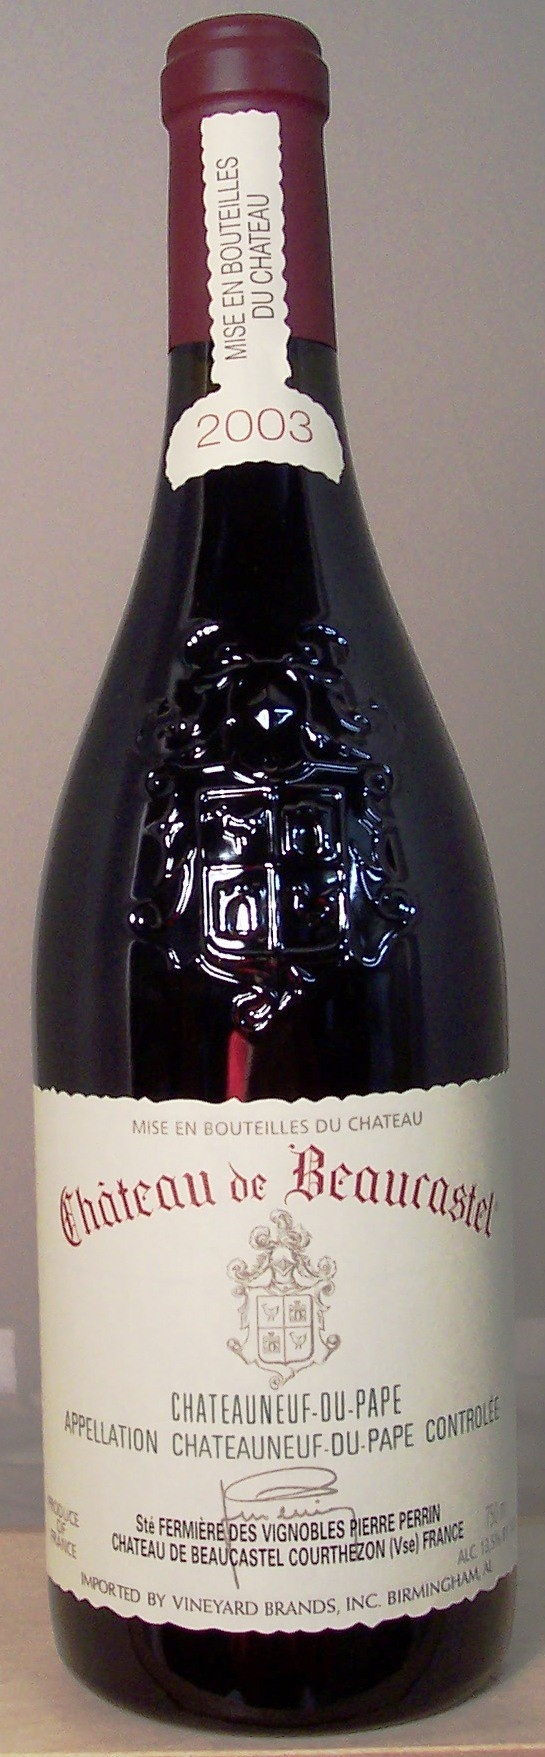 Arguably one of the most well known Chateuneuf du Papes is the Perrin Family's Chateau de Beaucastel. Traditionally, a little tightly wound in its youth, this is definitely a wine to cellar and will reward those patient enough to lay it down. Older vintages have been said to possess a bouquet evocative of Raid Spray, but in a good way. The oldest vintage I ever tried was the '89 and it definitely had that aromatic component.